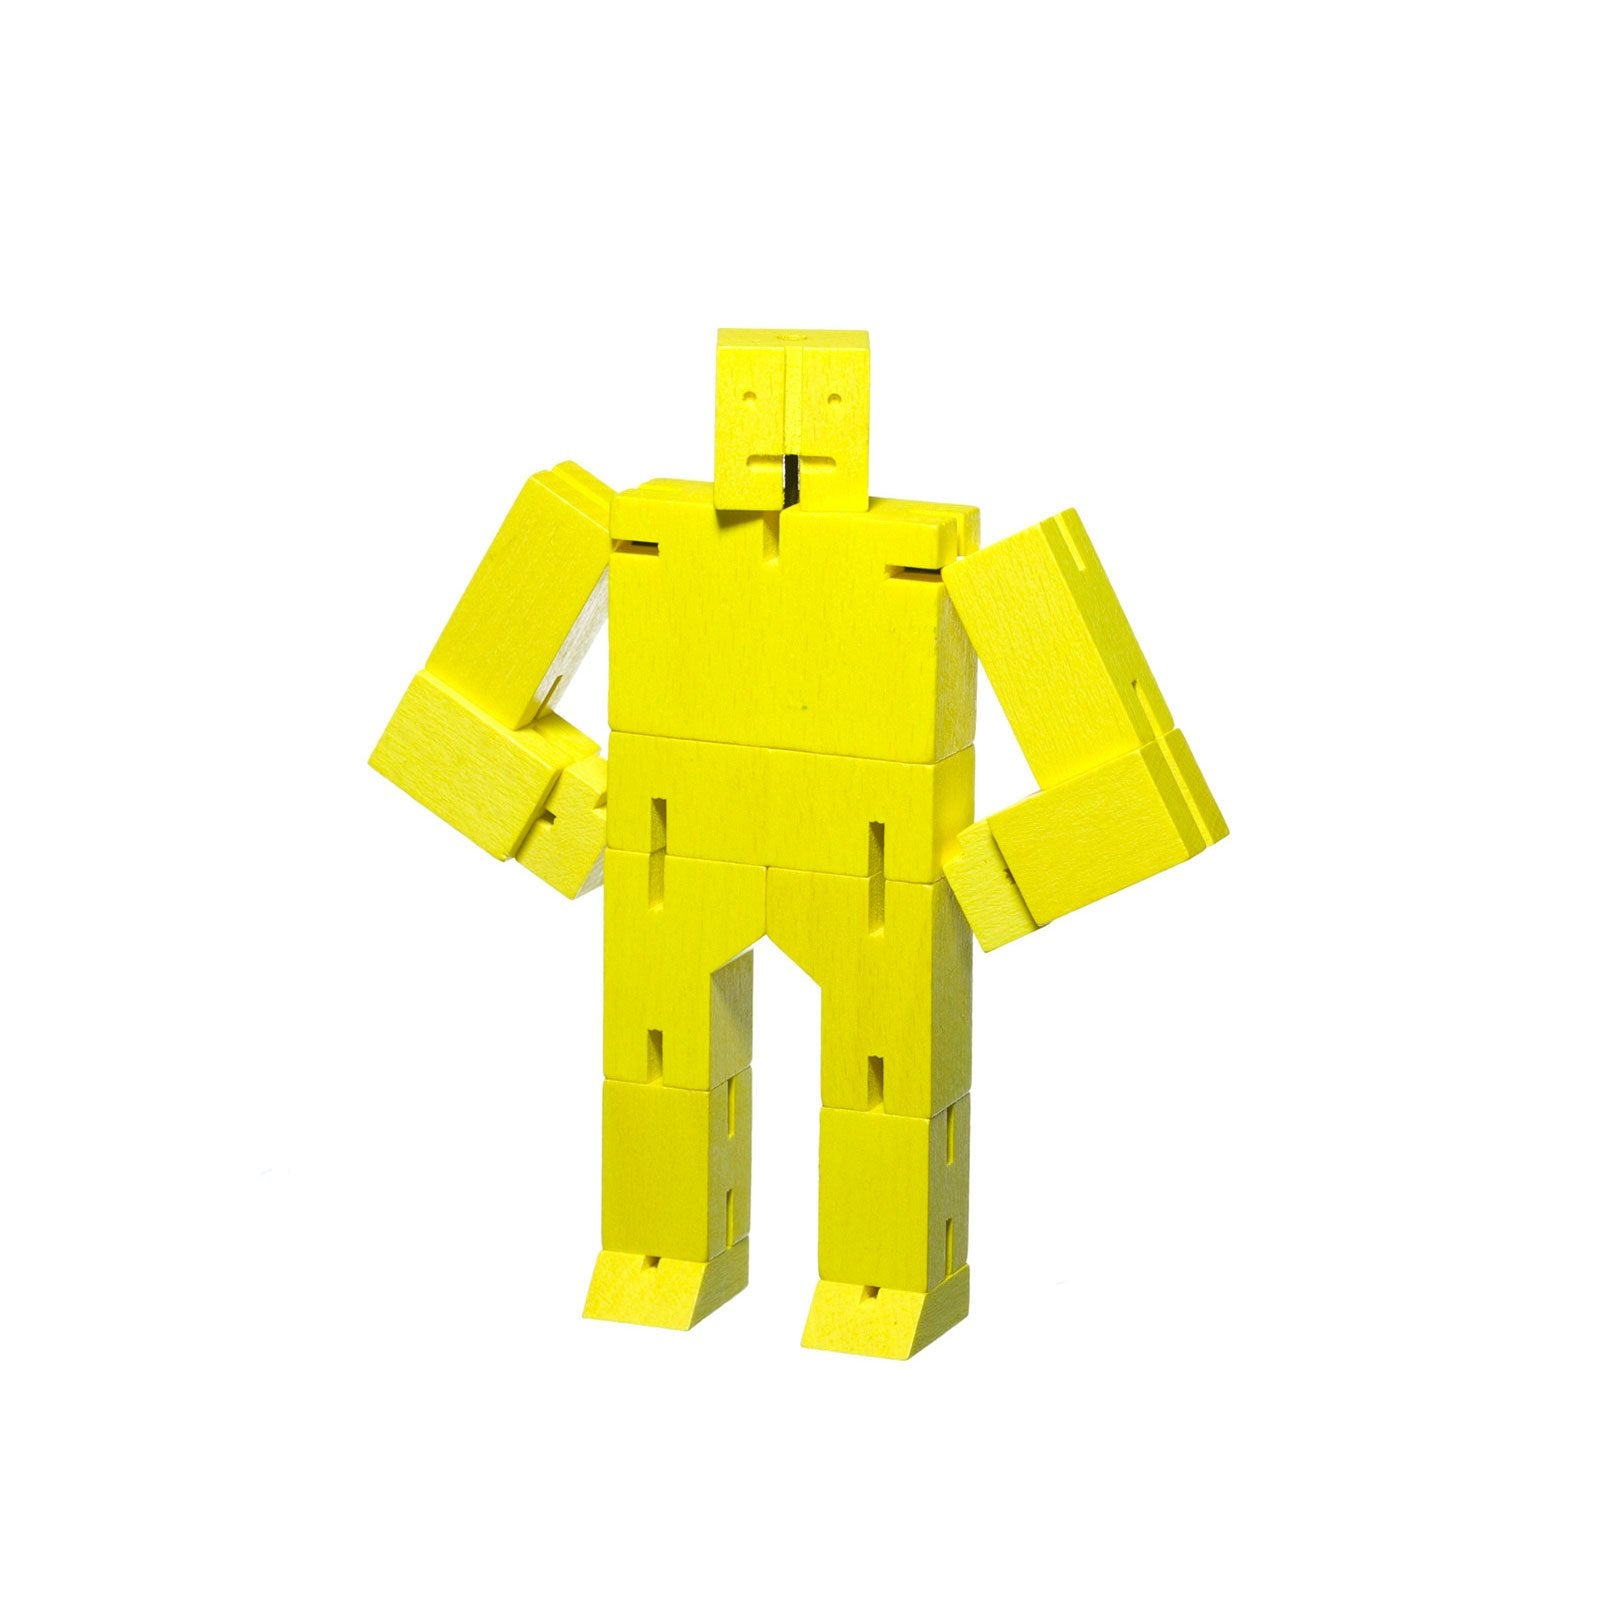 Cubebots David Weeks Studio Activity Toys Micro / Yellow at Little Earth Nest Eco Shop